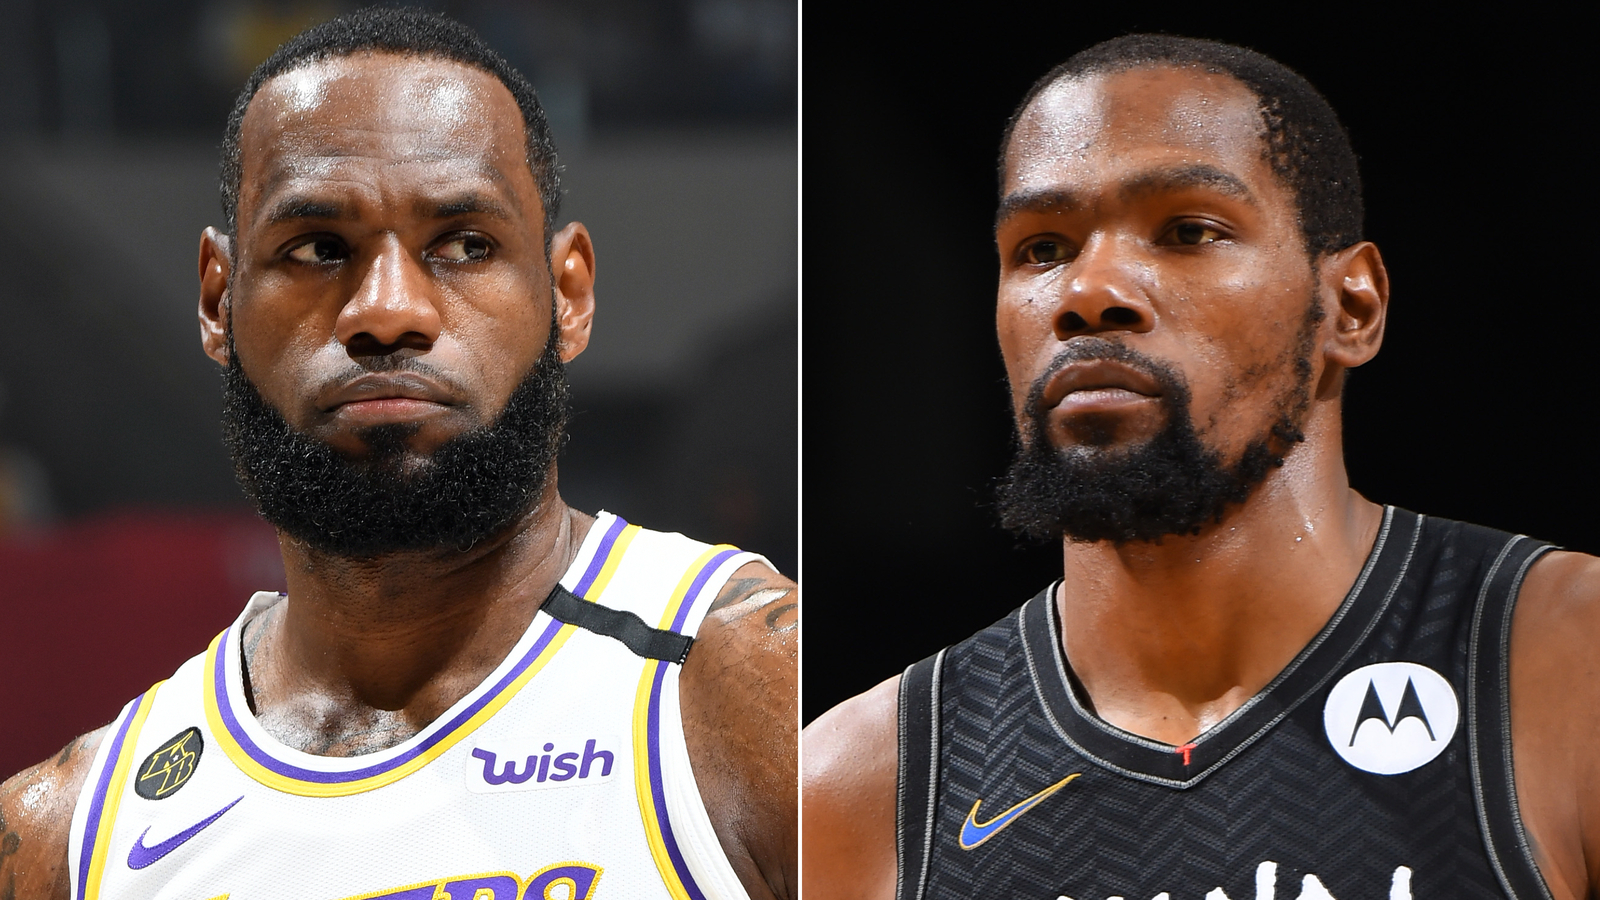 NBA's best players gather for All-Star Game like no other